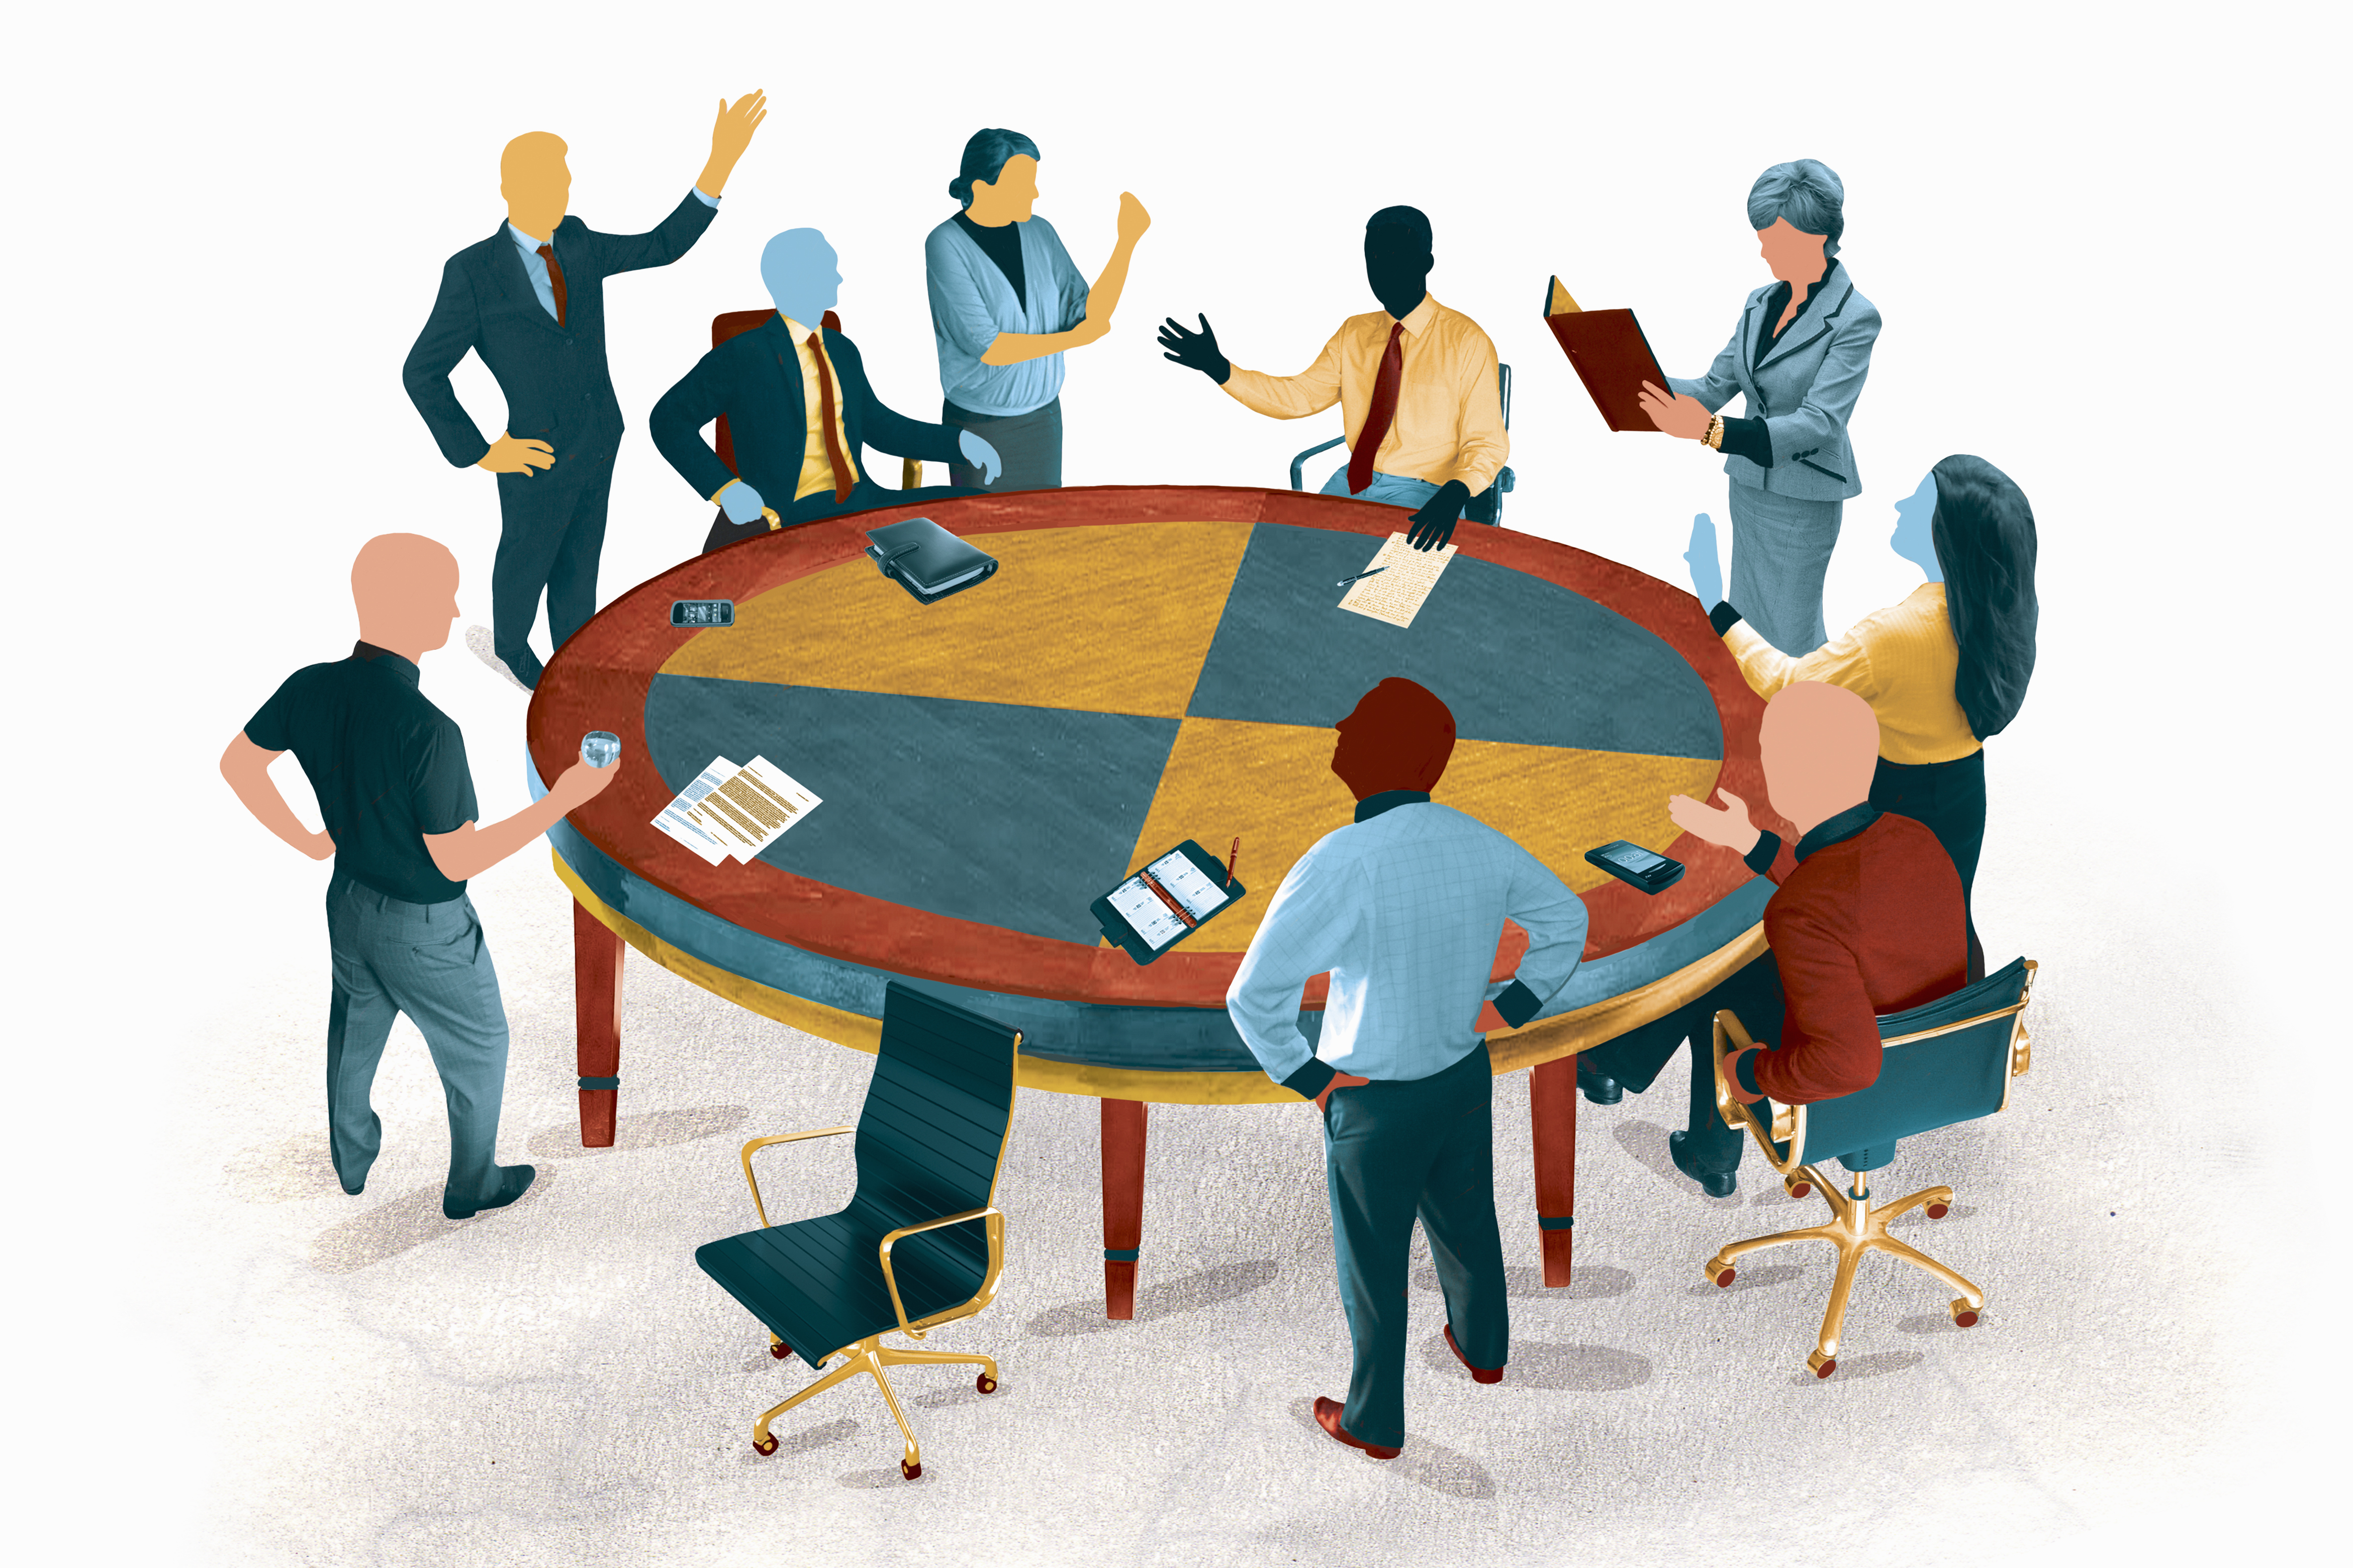 And So We Meet, Again: Why The Workday Is So Filled With Meetings